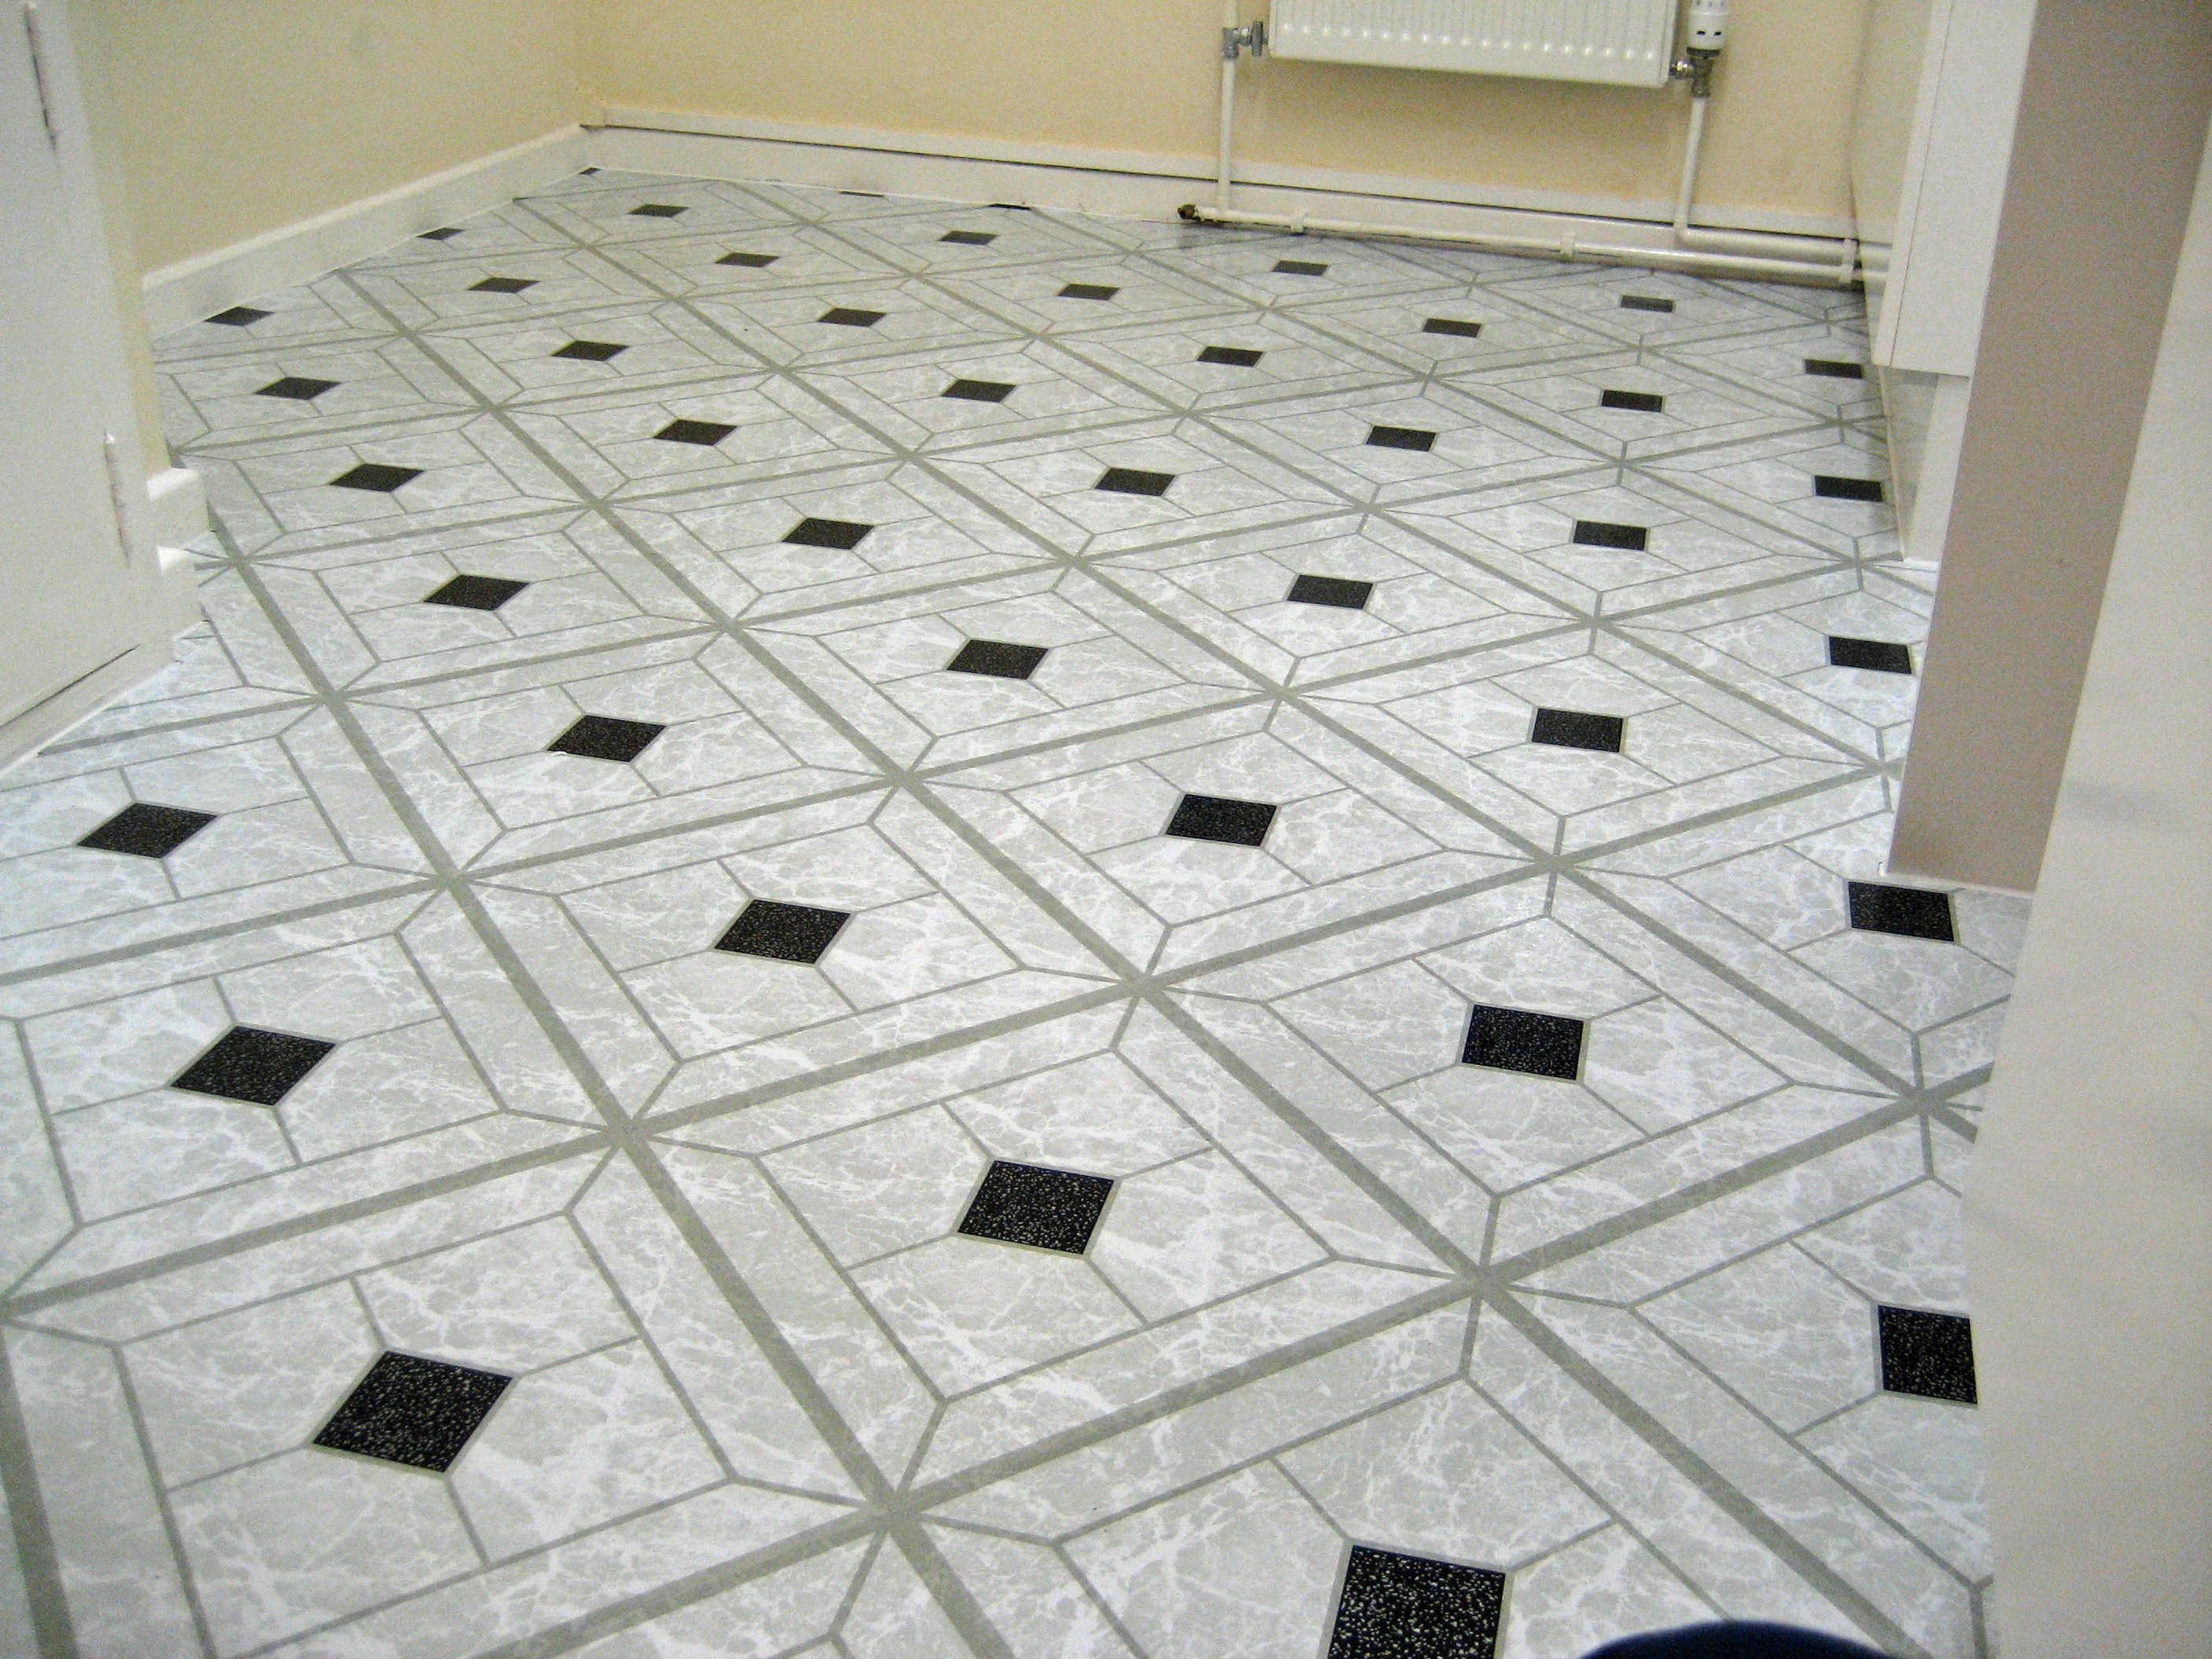 Black And White Flooring Details About 50 Vinyl Floor Tiles Black White Diamond Self Stick Vinyl Flooring Stick On Tiles Self Stick Vinyl Tile